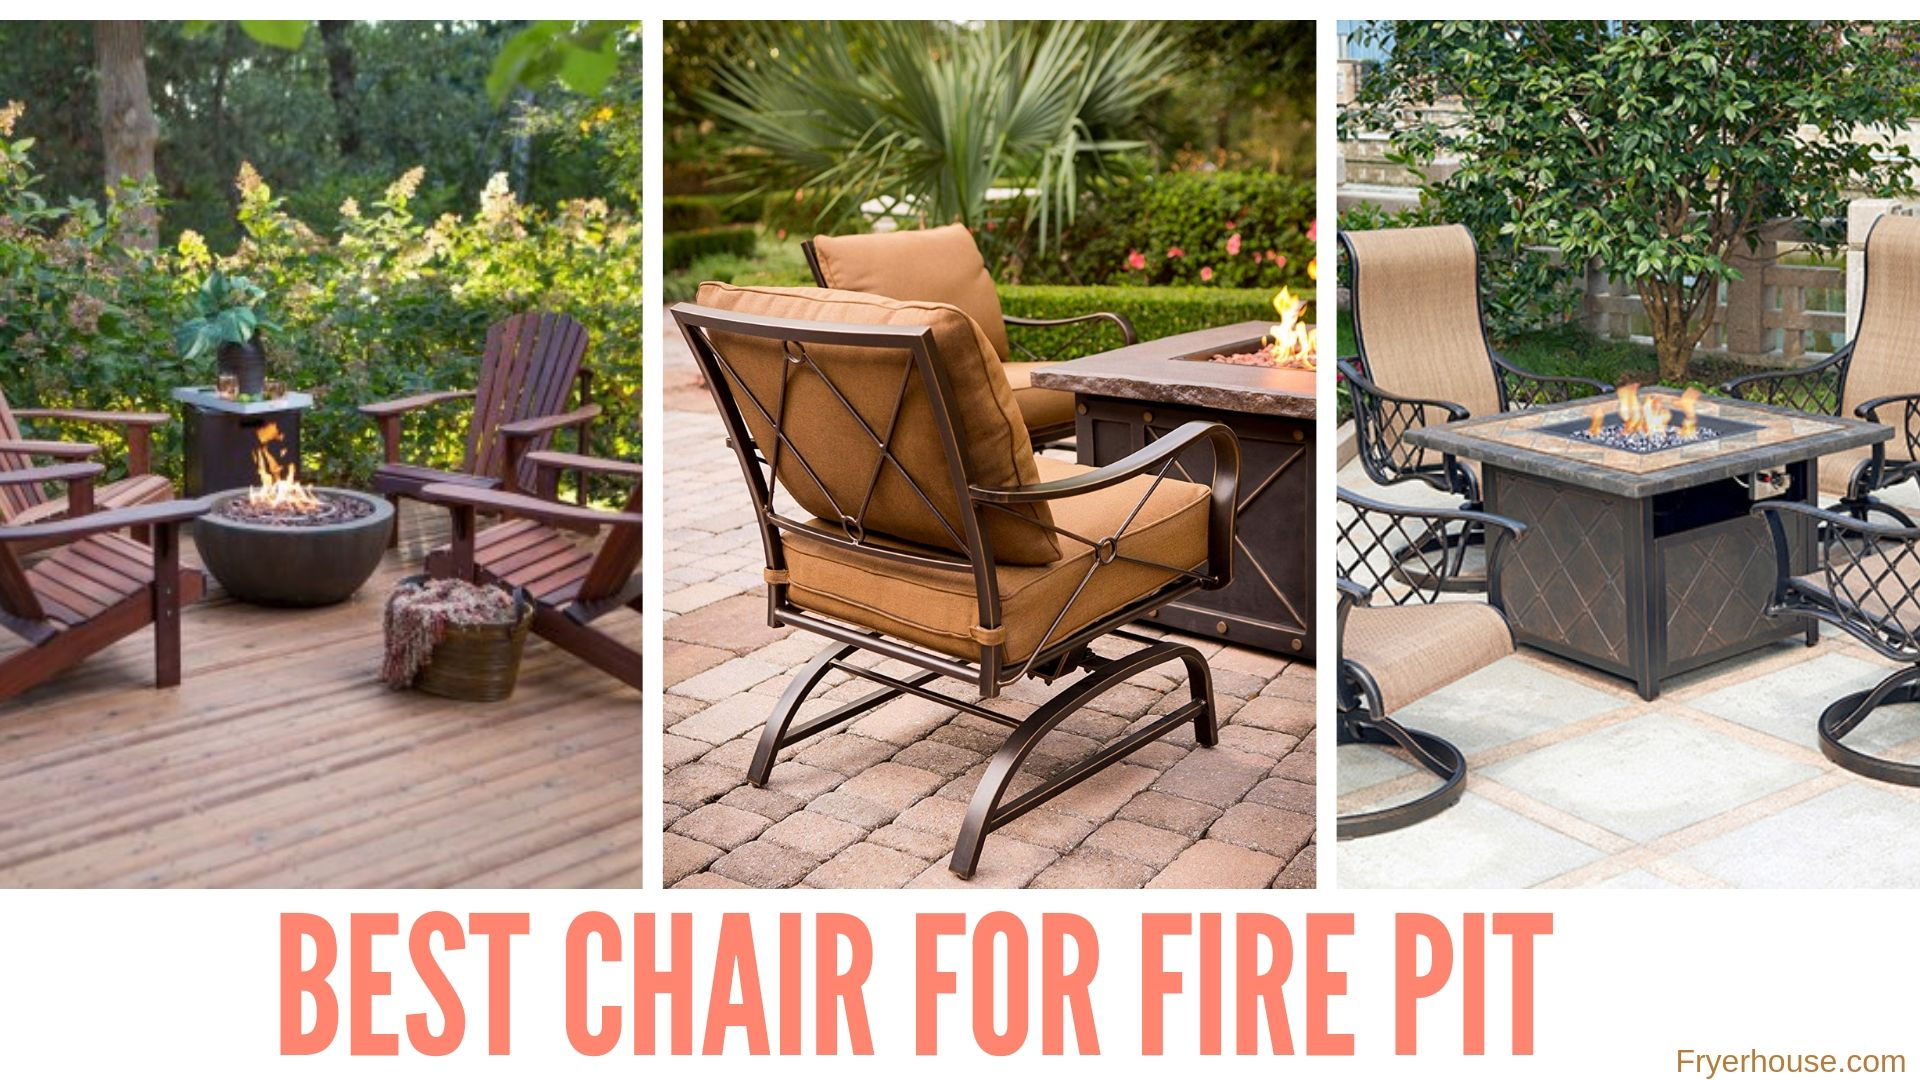 10 Best Chairs For Fire Pit You Can Buy In 2019